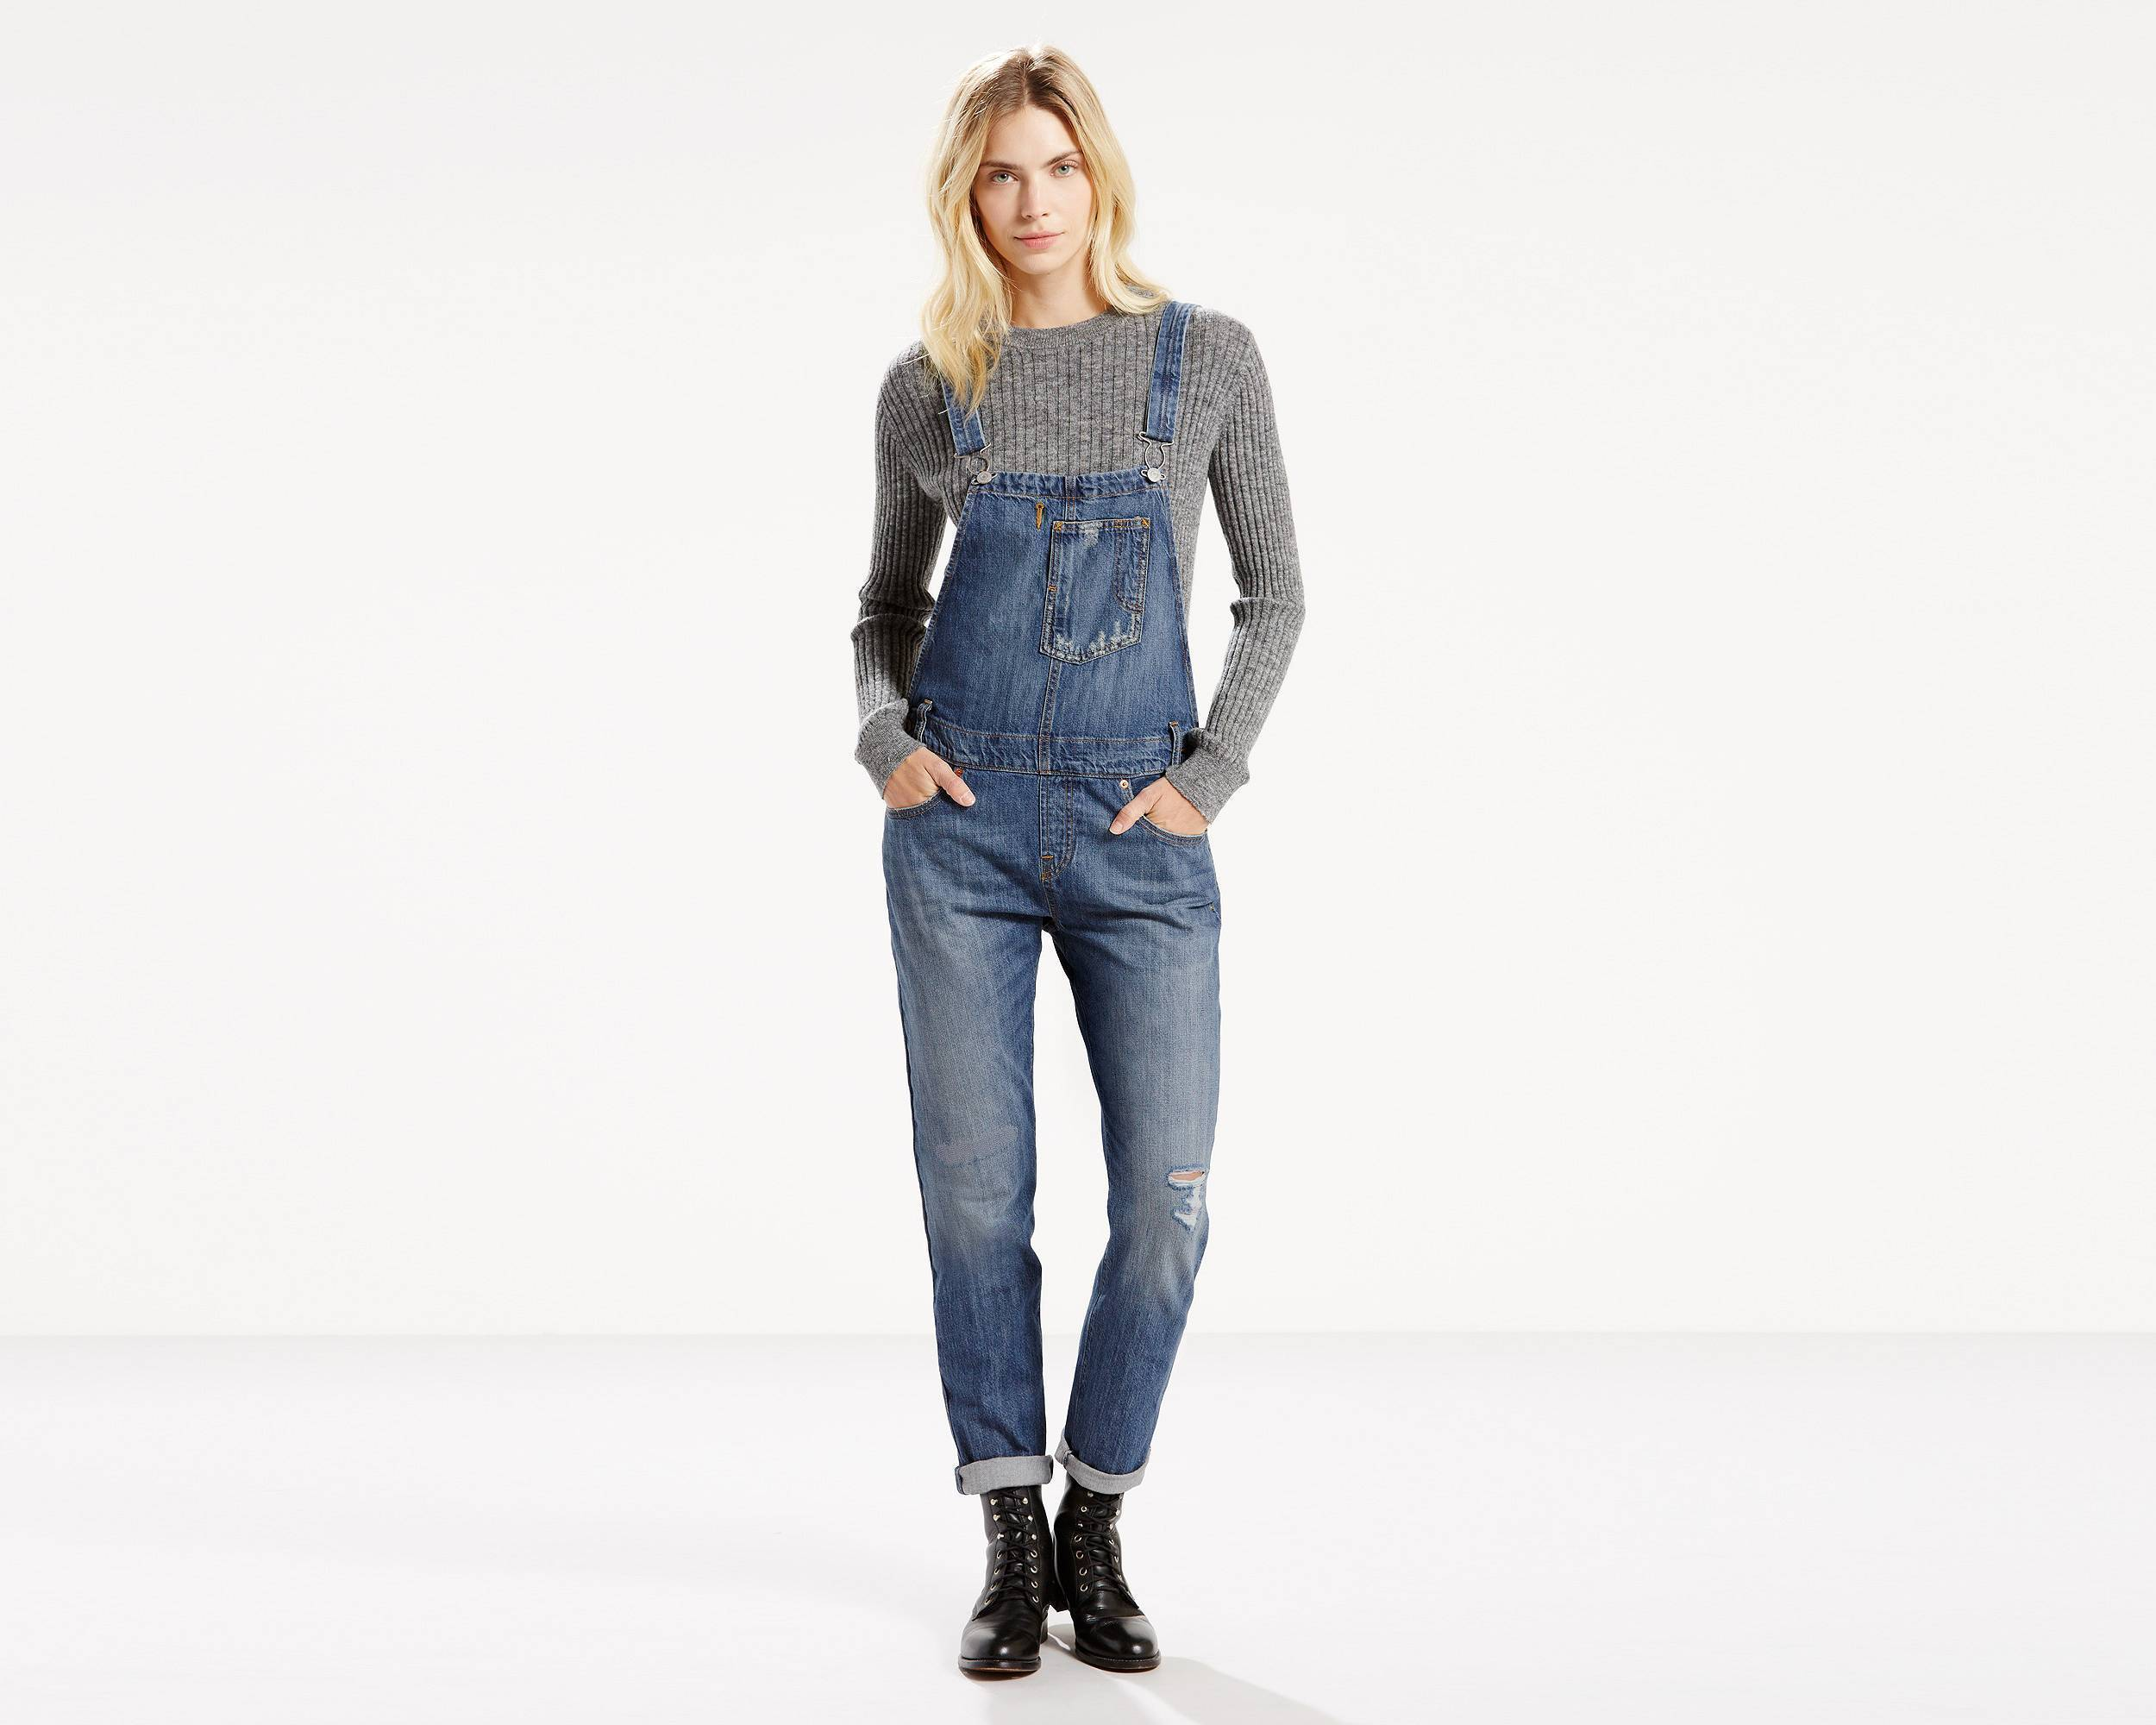 a1f830aac16 Which Overalls To Wear With Black Lace-up Flat Boots (3 looks ...